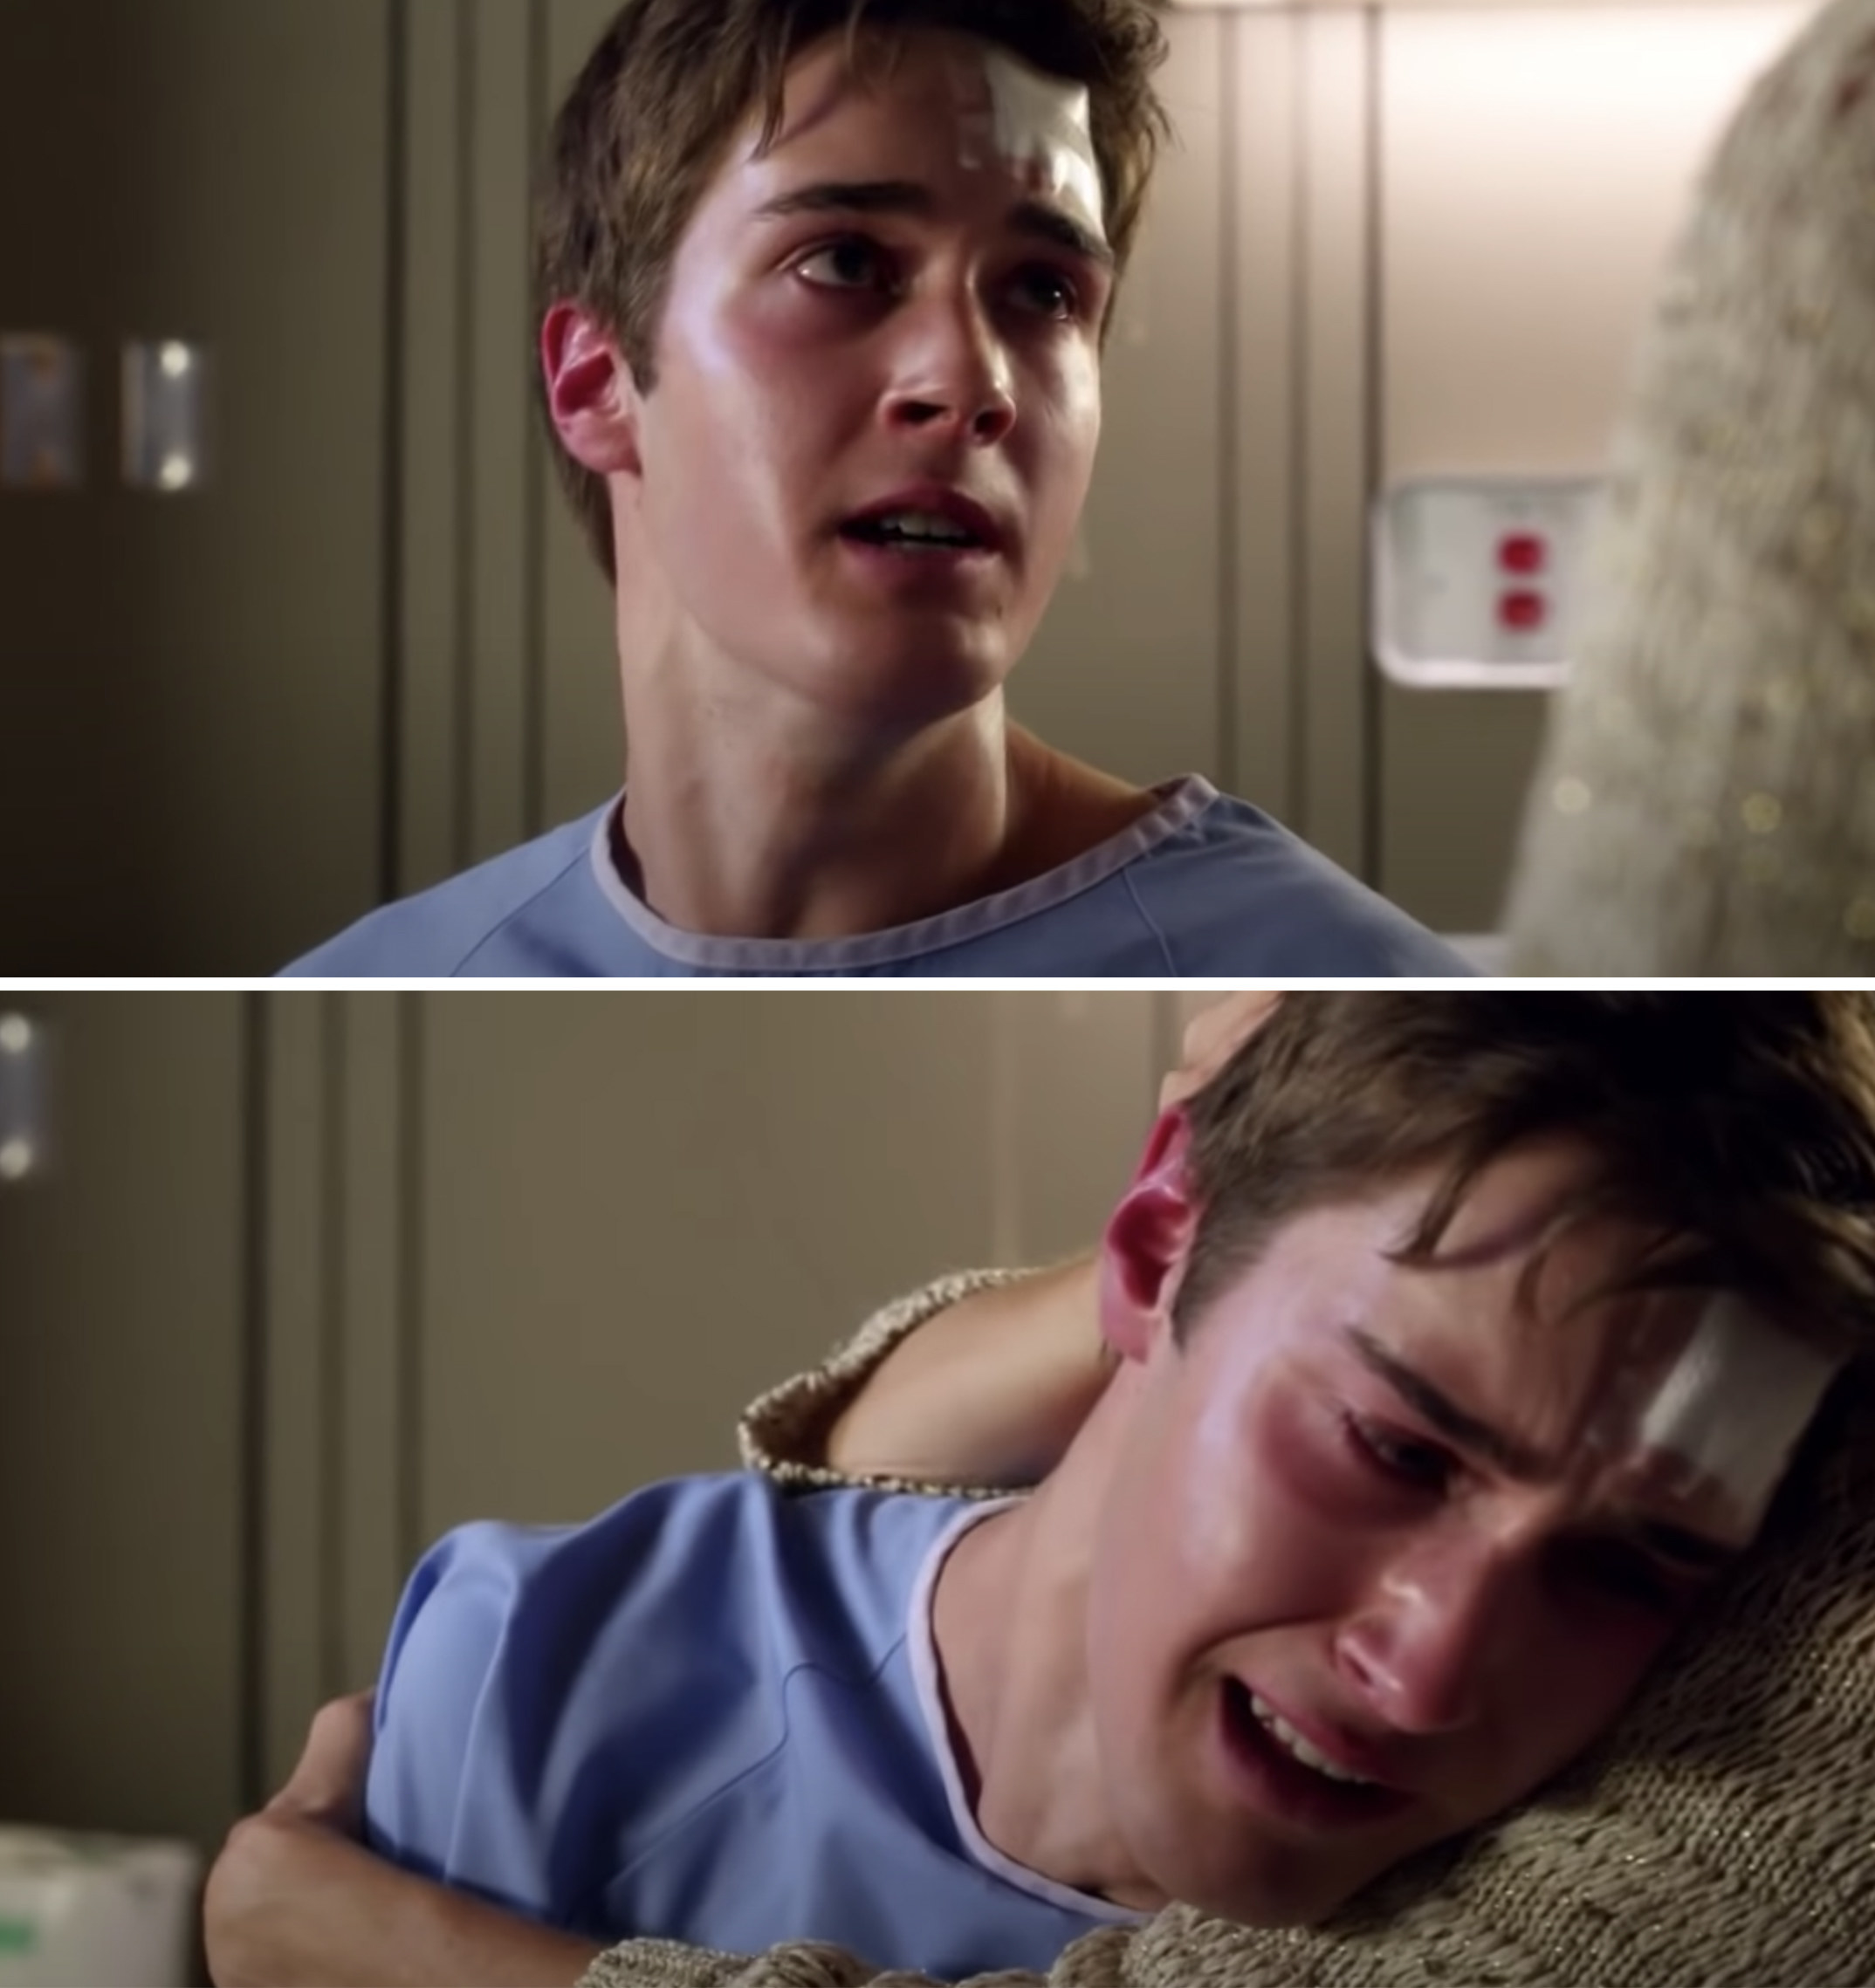 Miles crying in the hospital